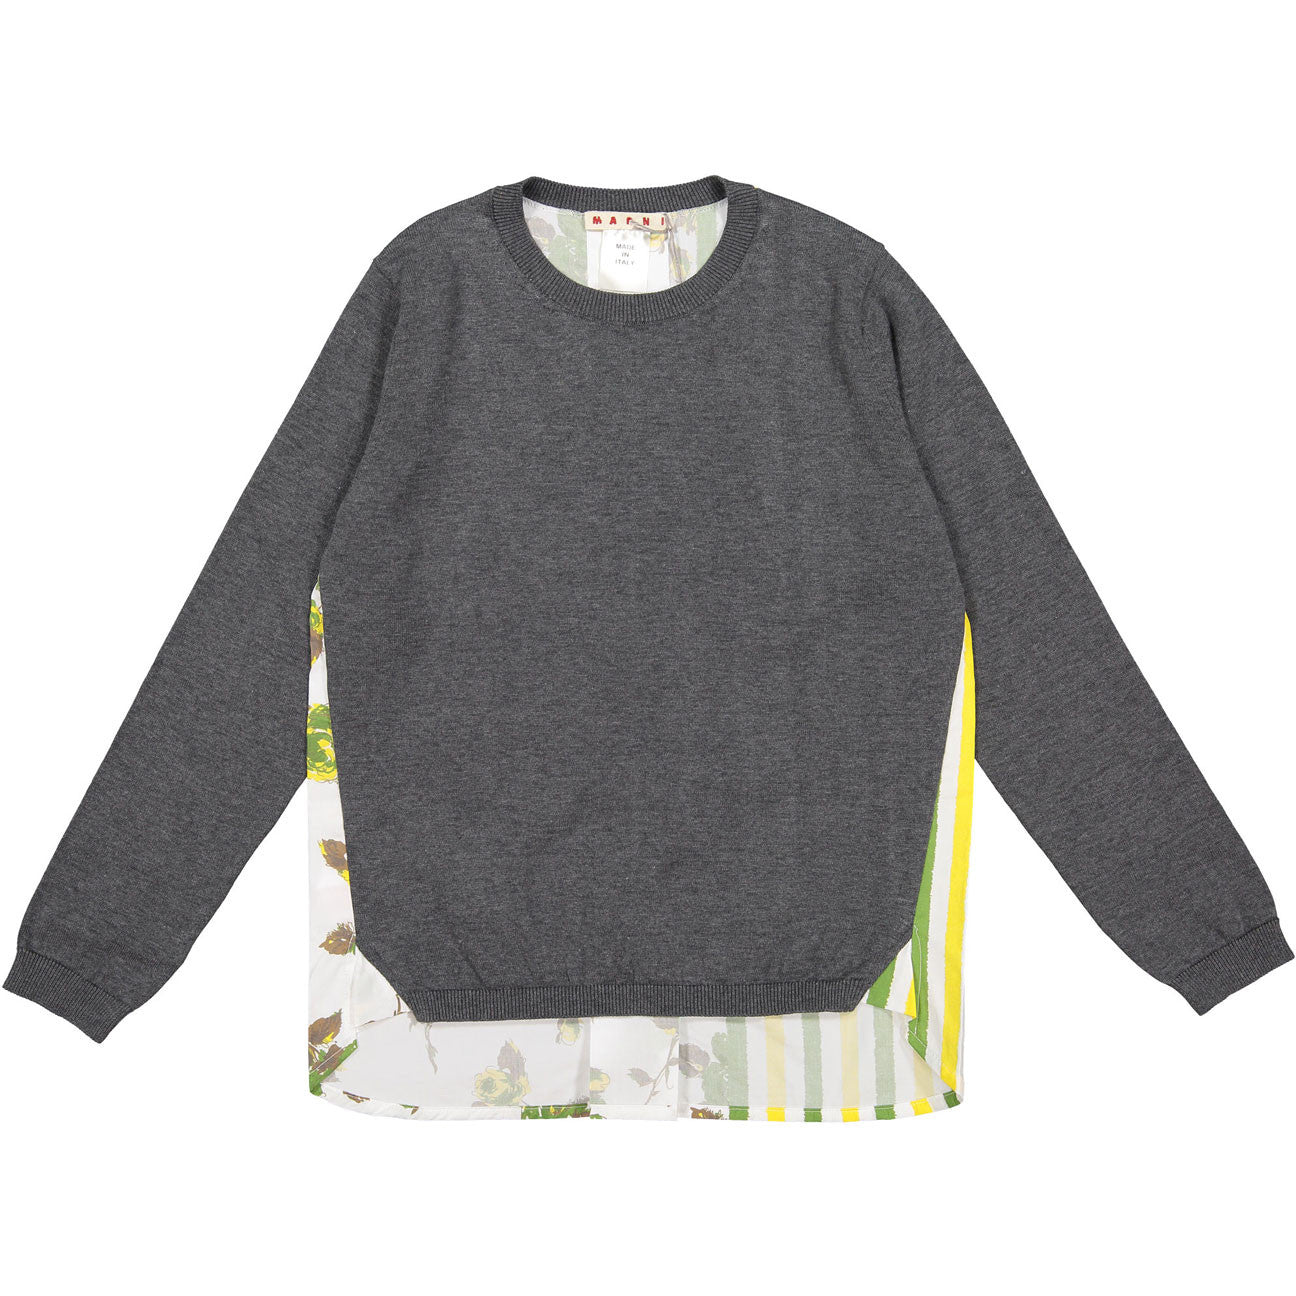 Marni Grey Melange Sweater - Ladida